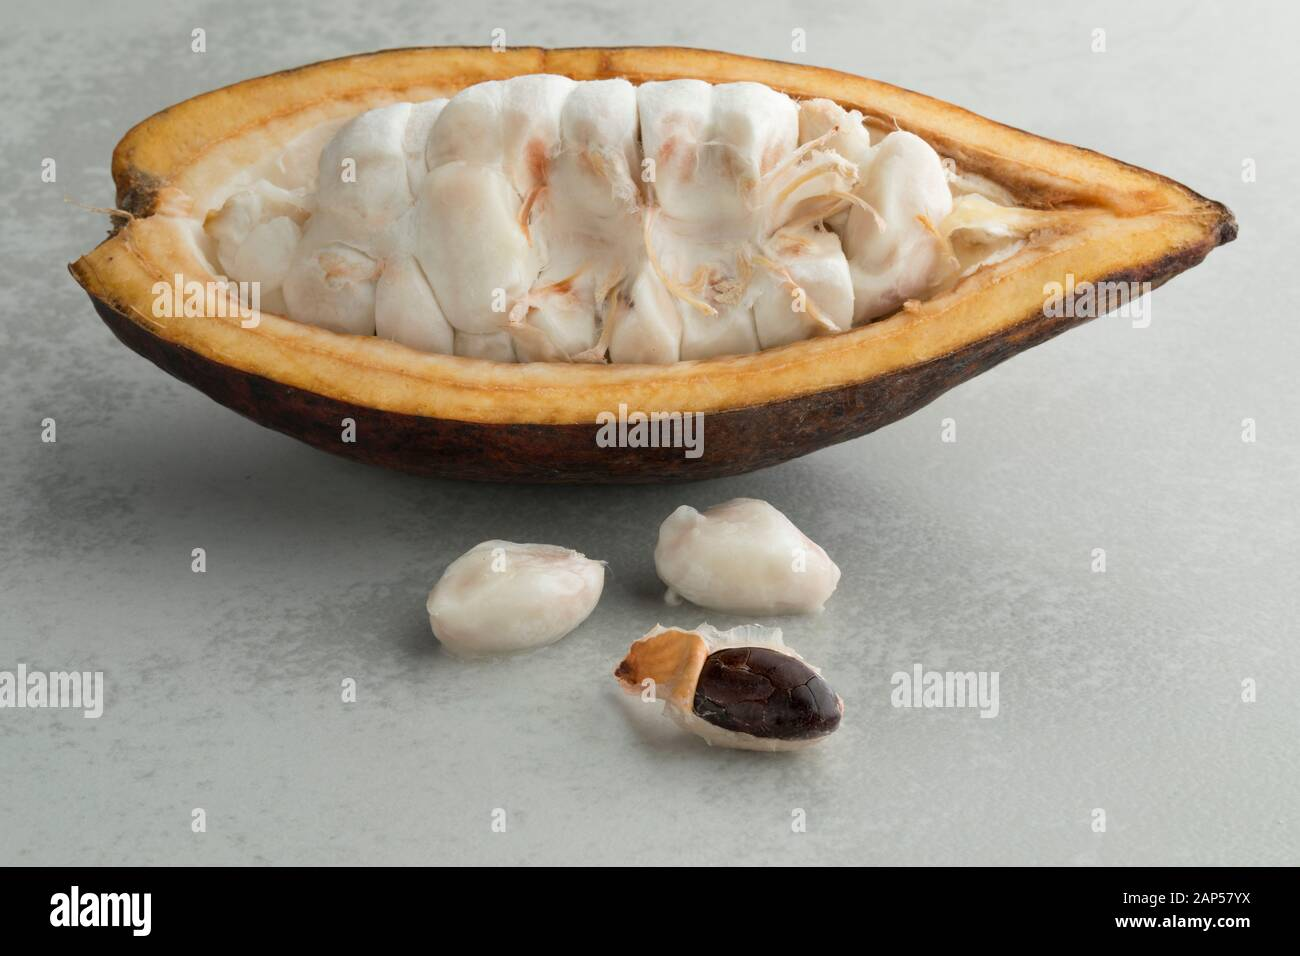 Fresh halved cocoa fruit with raw cocoa beans visible Stock Photo